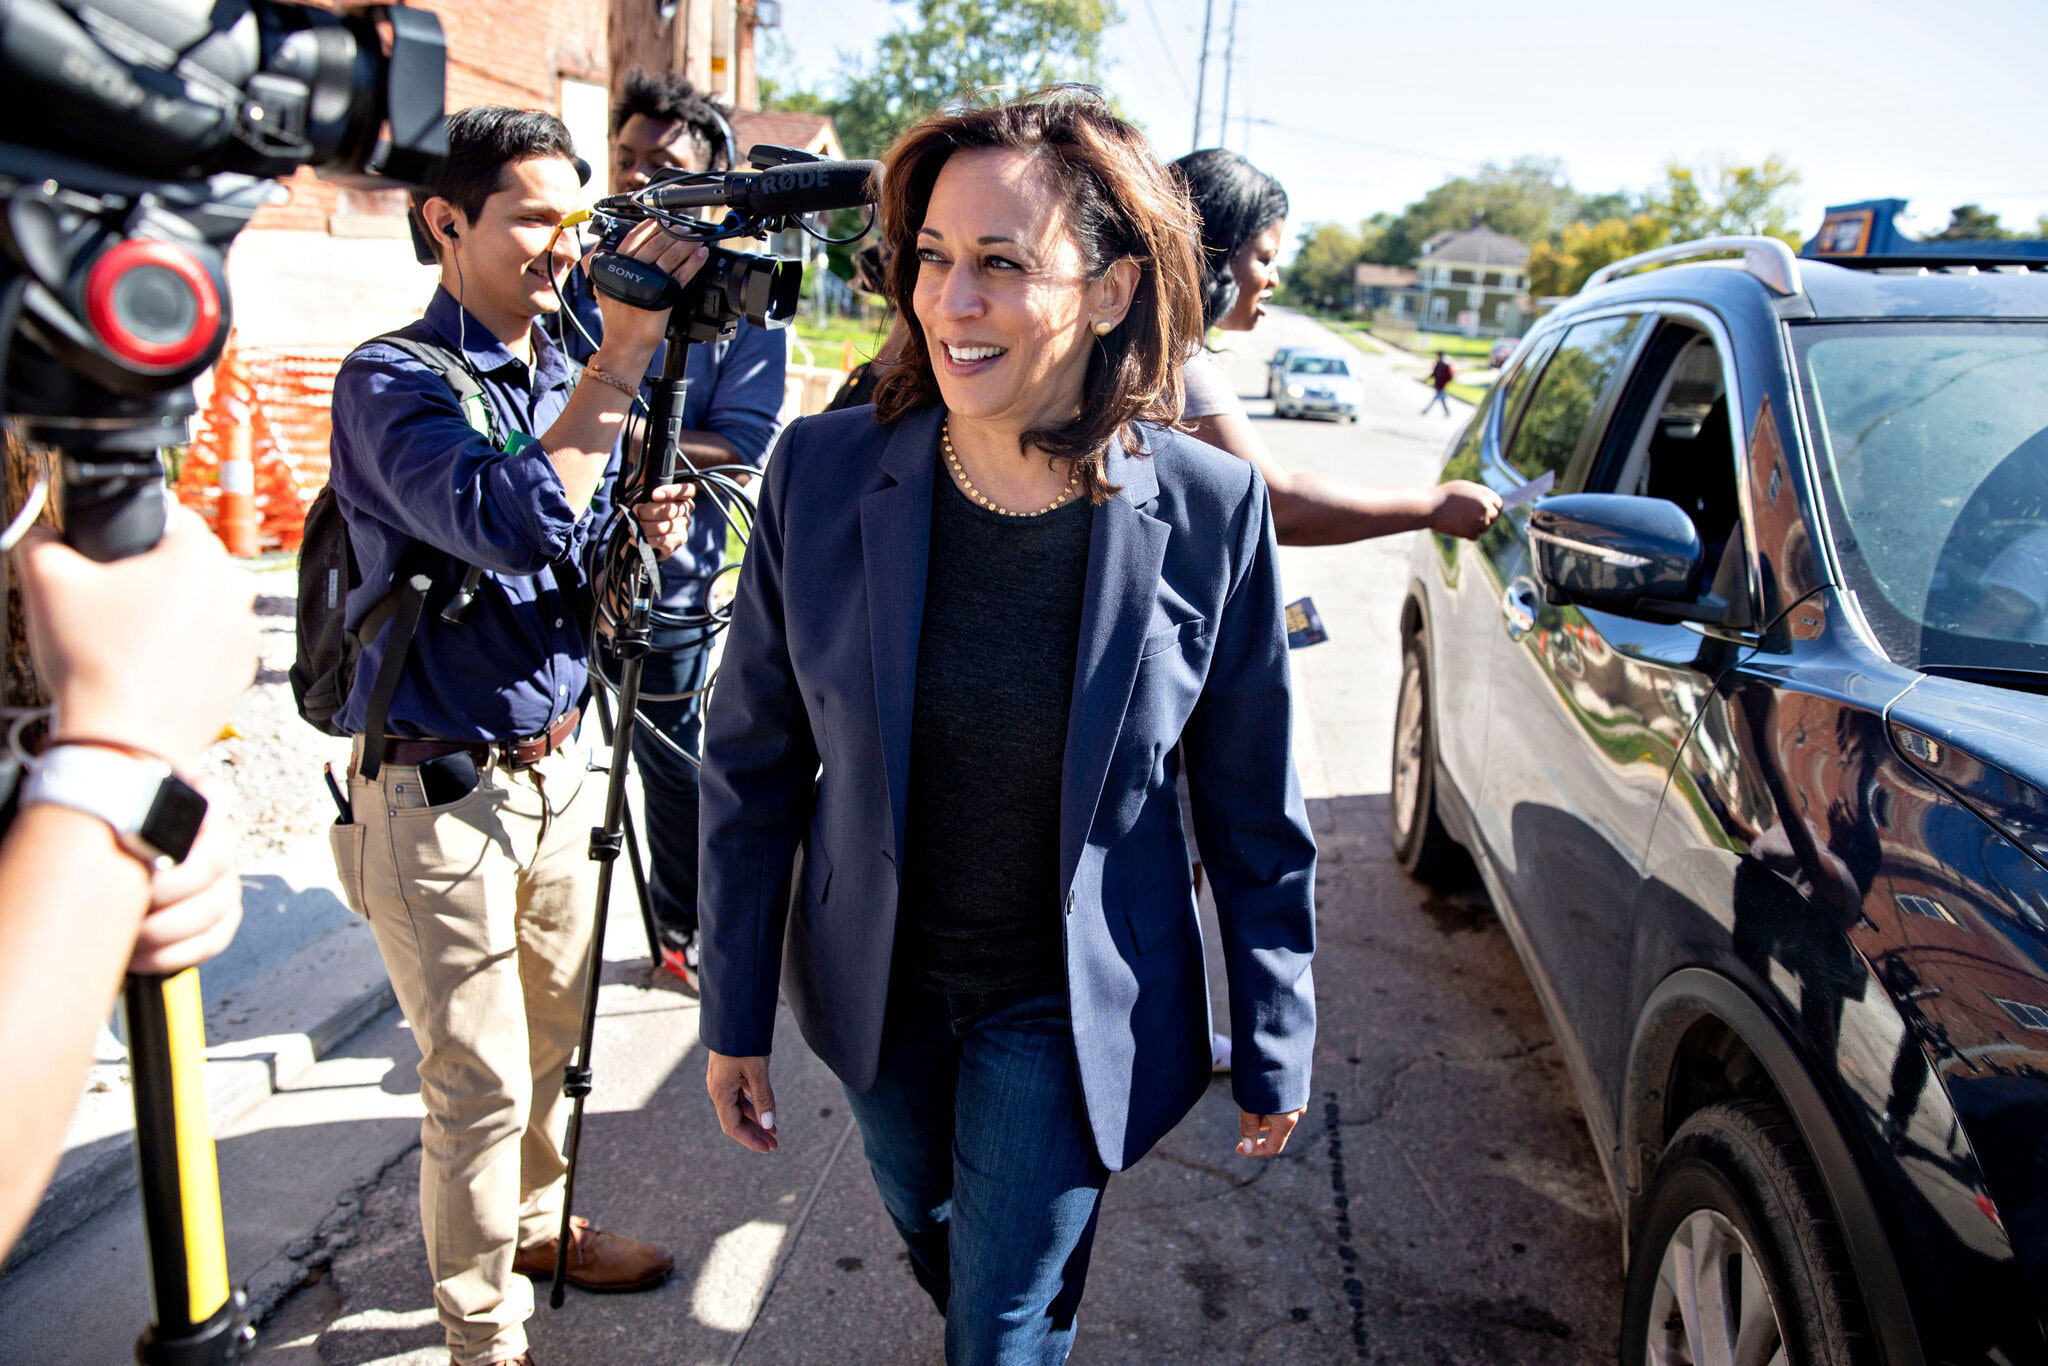 Democrats hope that the selection of Senator Kamala Harris will attract moderates and Black voters in swing states. (Credit: Daniel Acker, The New York Times)